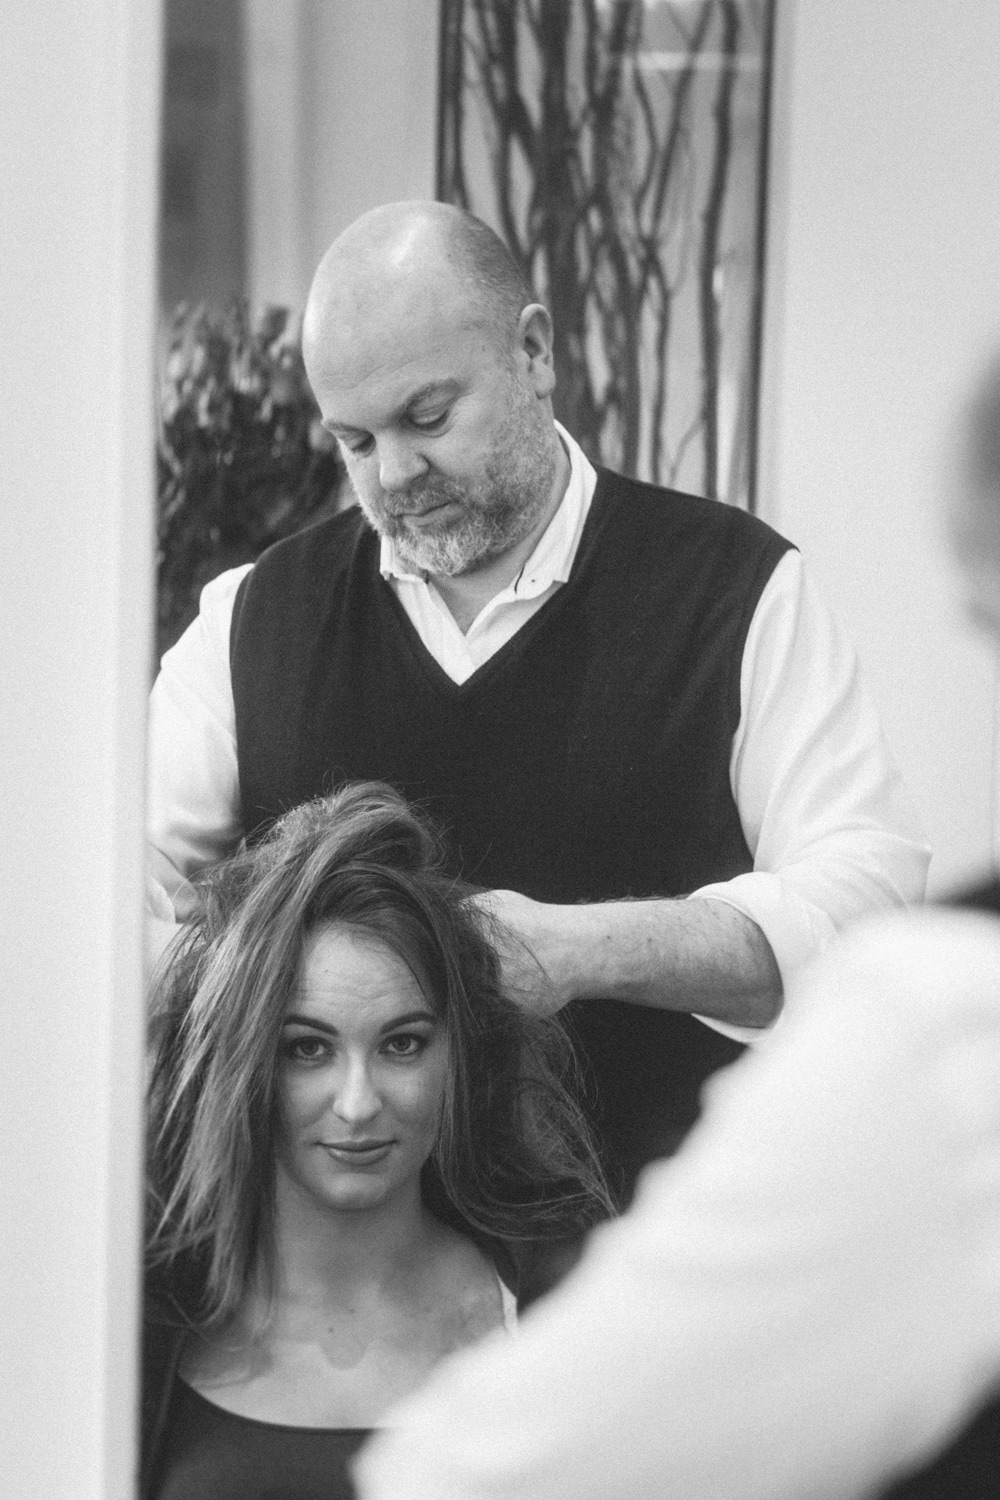 Wedding preperations, the bride getting her hair done.